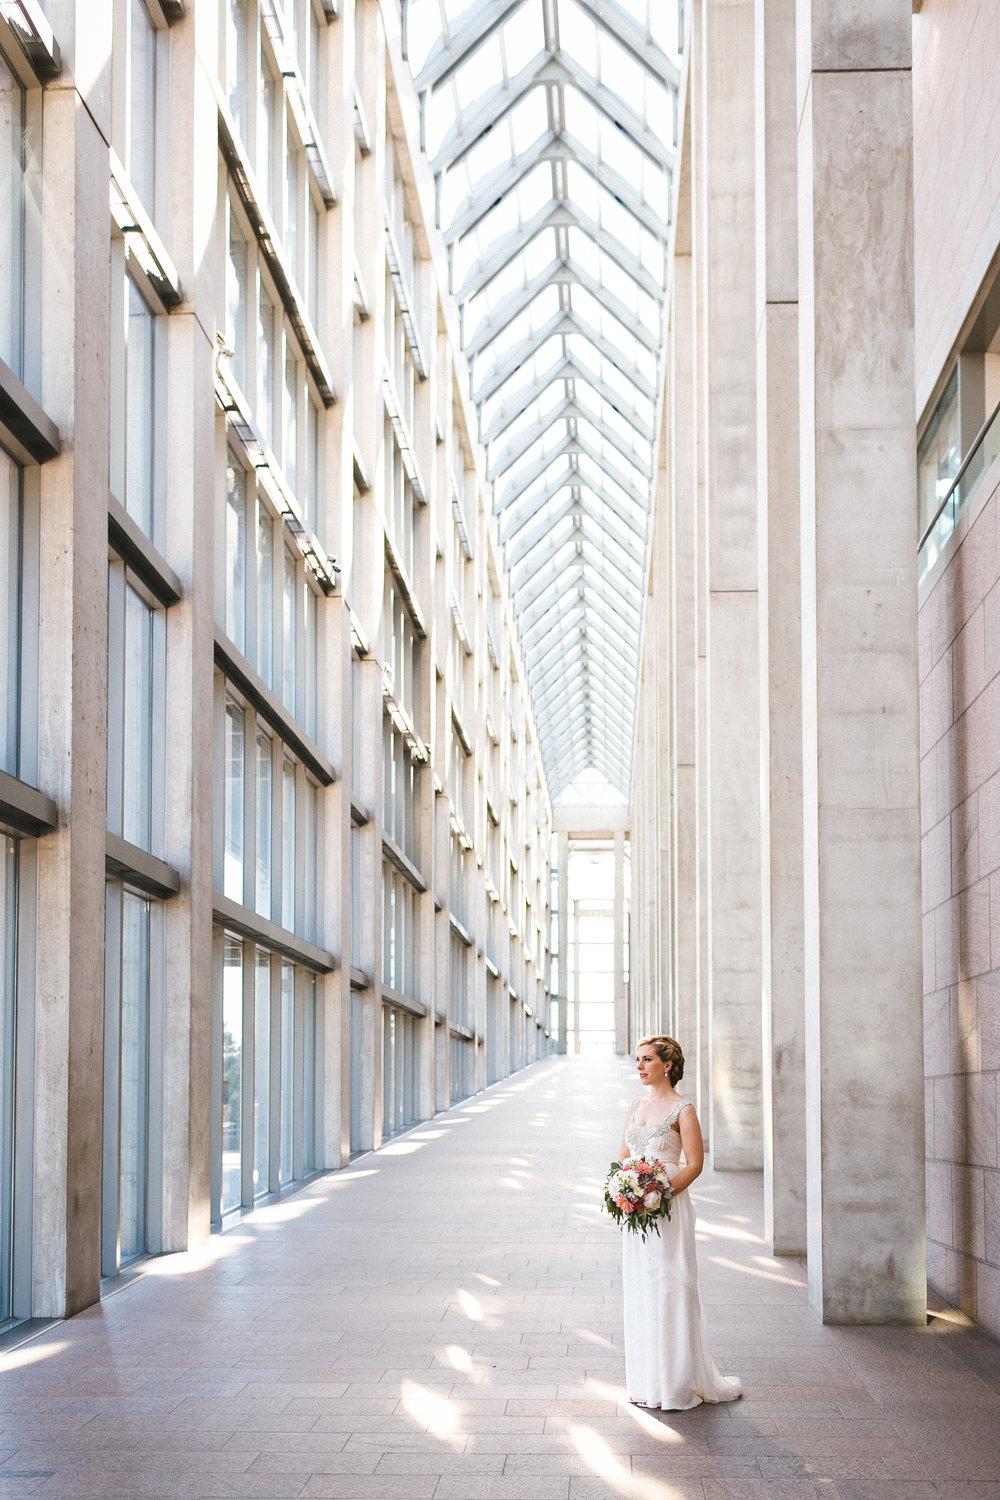 Toast Events wedding 2014, National Art Gallery Great Hall corridor | Photo Cred: Joel Bedford Photography